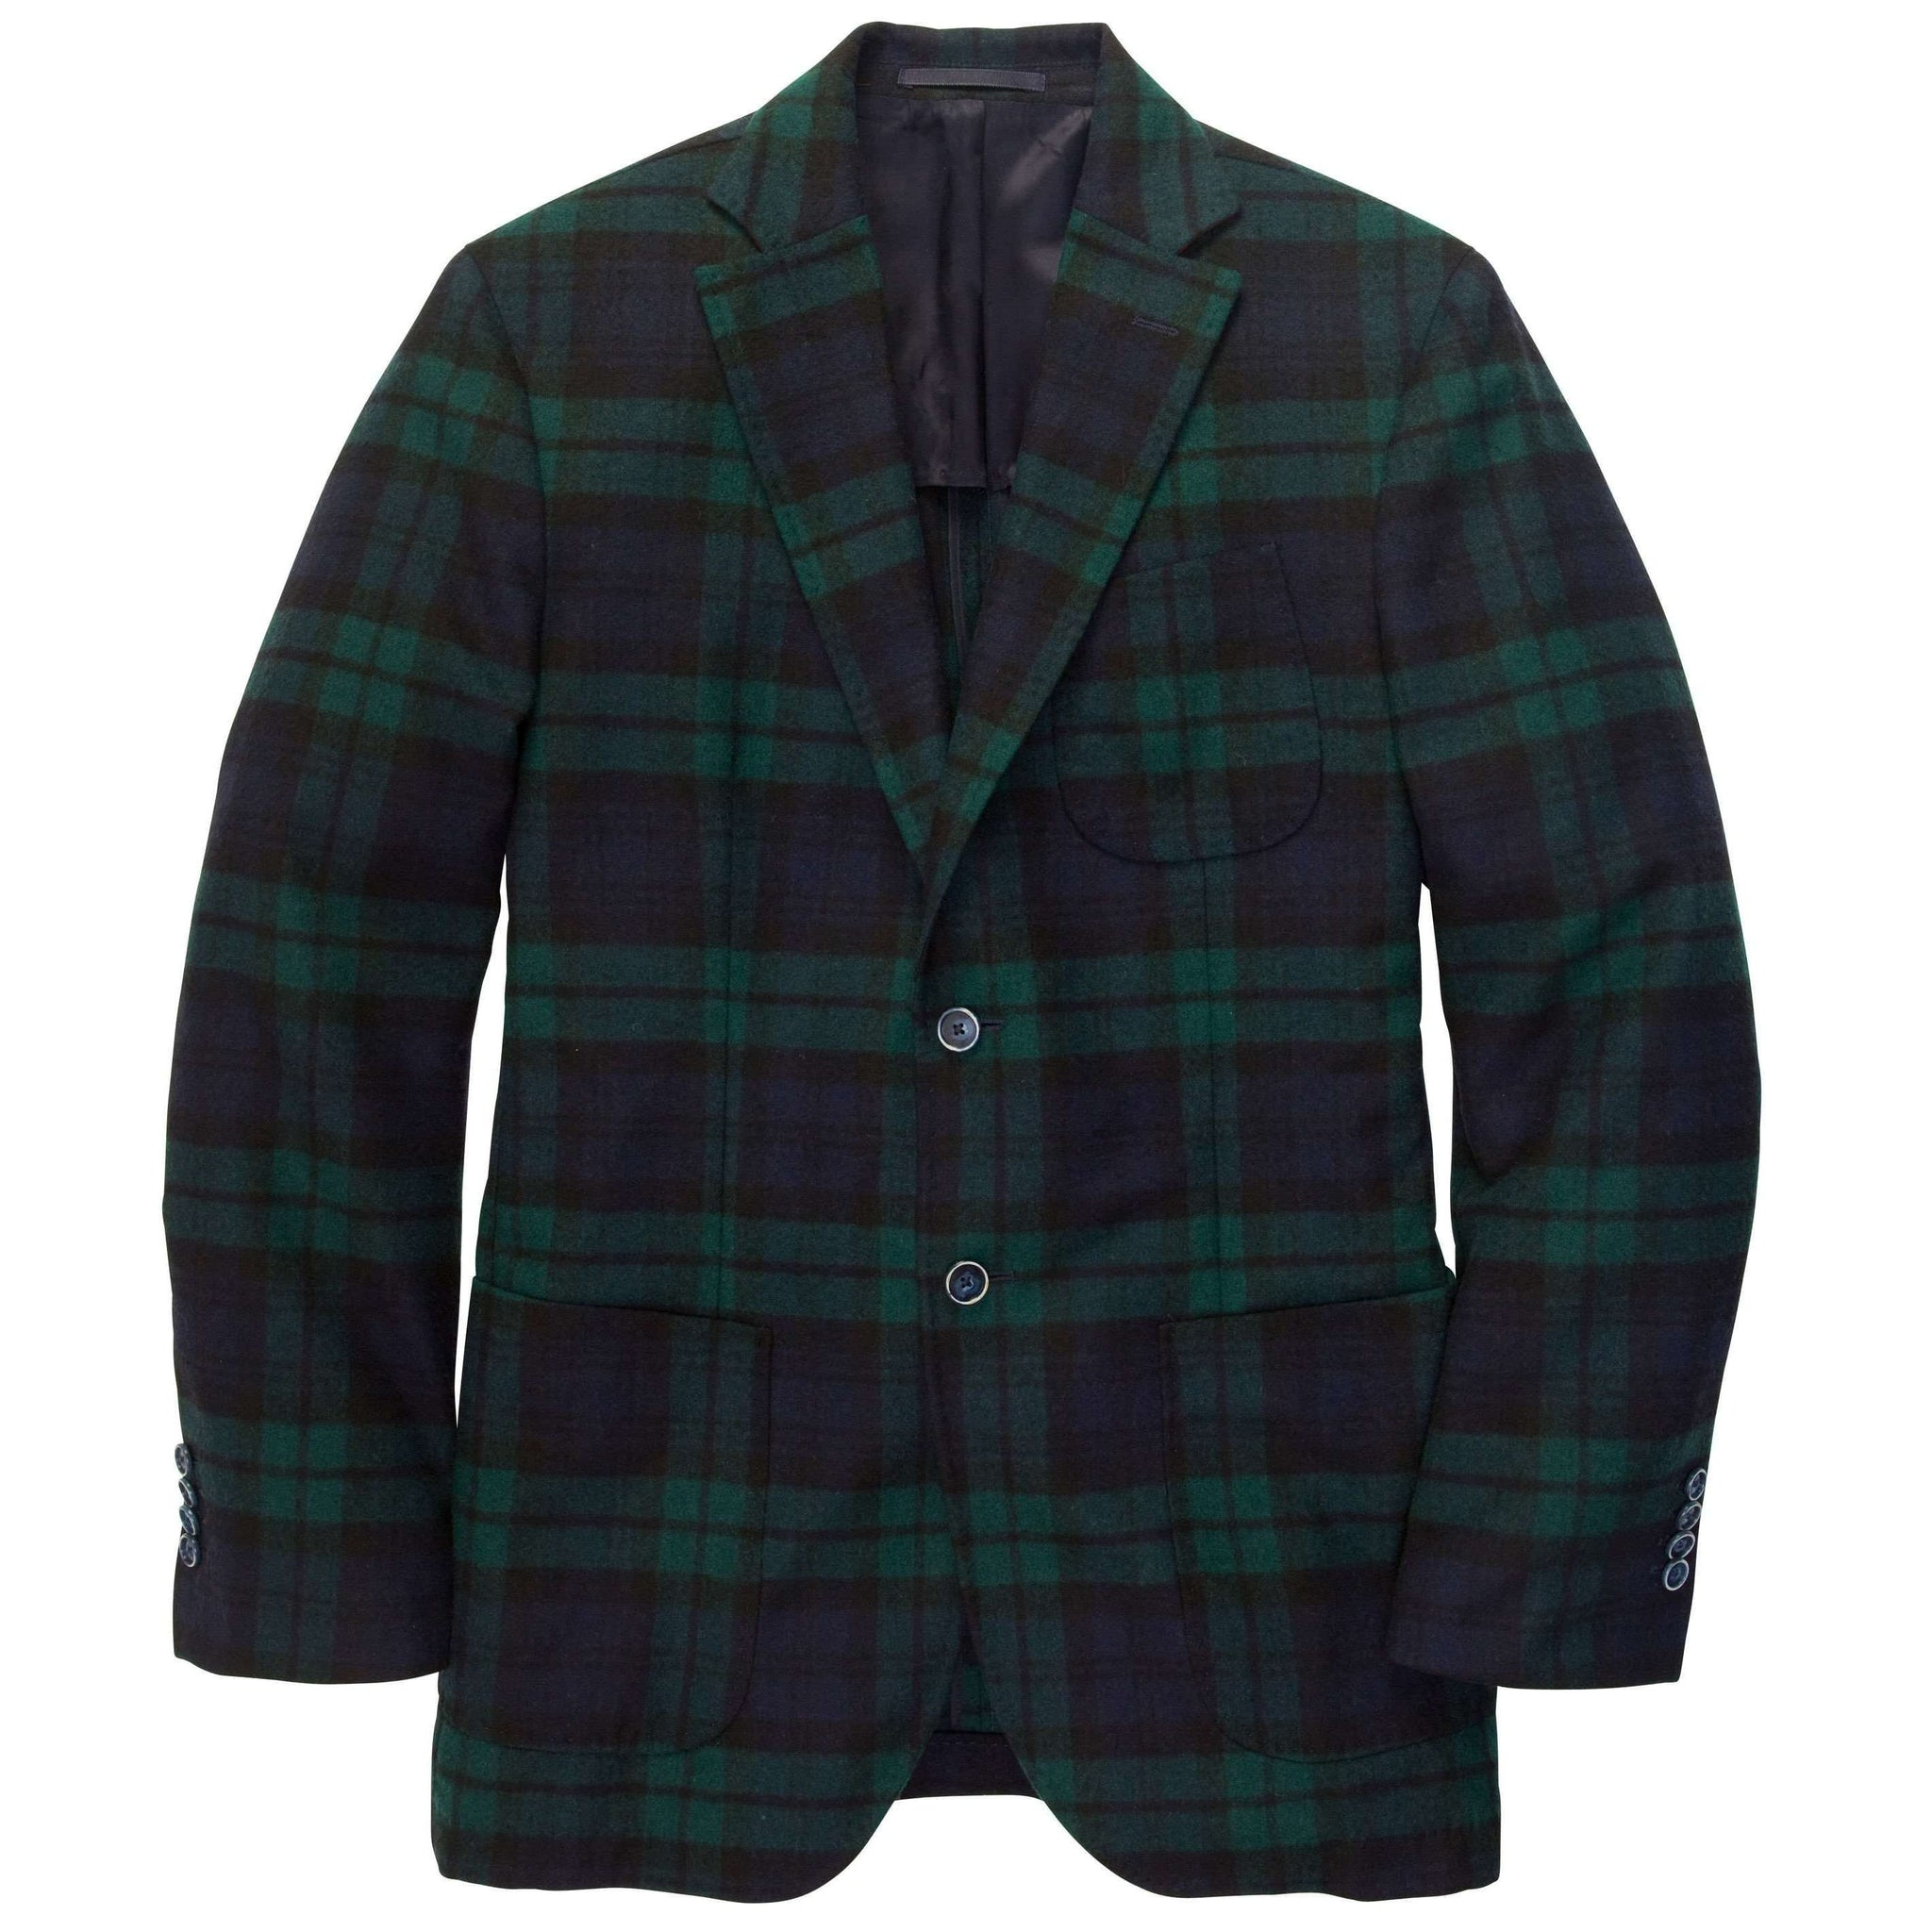 Gentleman's Jacket: Blackwatch Plaid